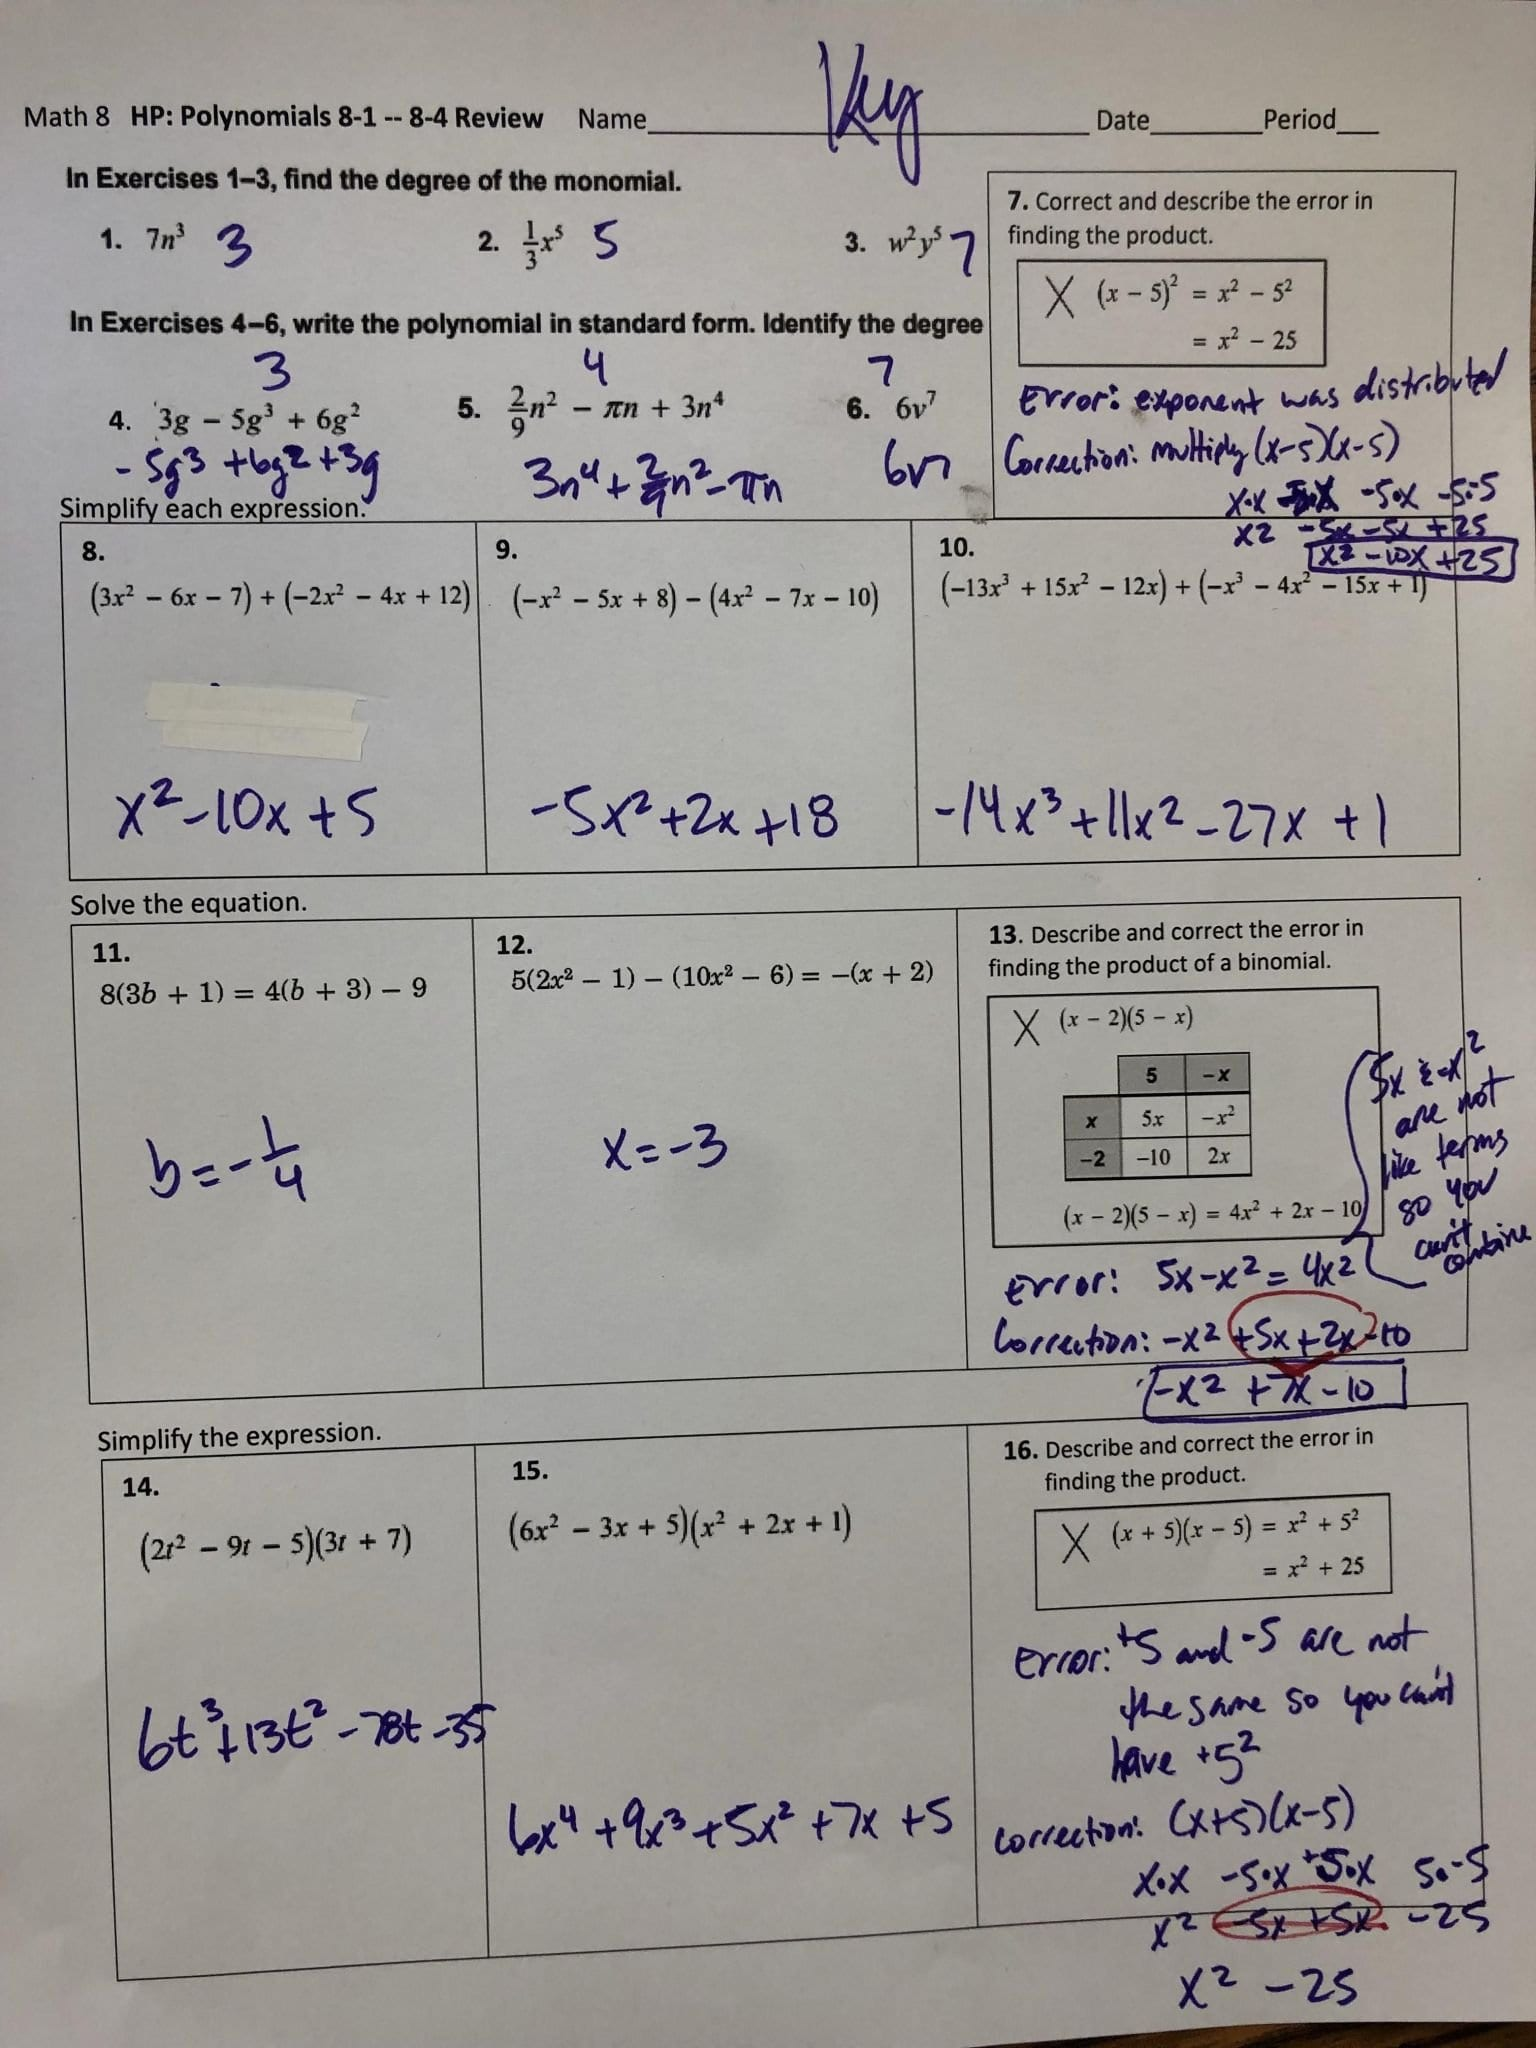 3 2 Practice Angles And Parallel Lines Worksheet Answers As Well As 3 2 Angles And Parallel Lines Worksheet Answers